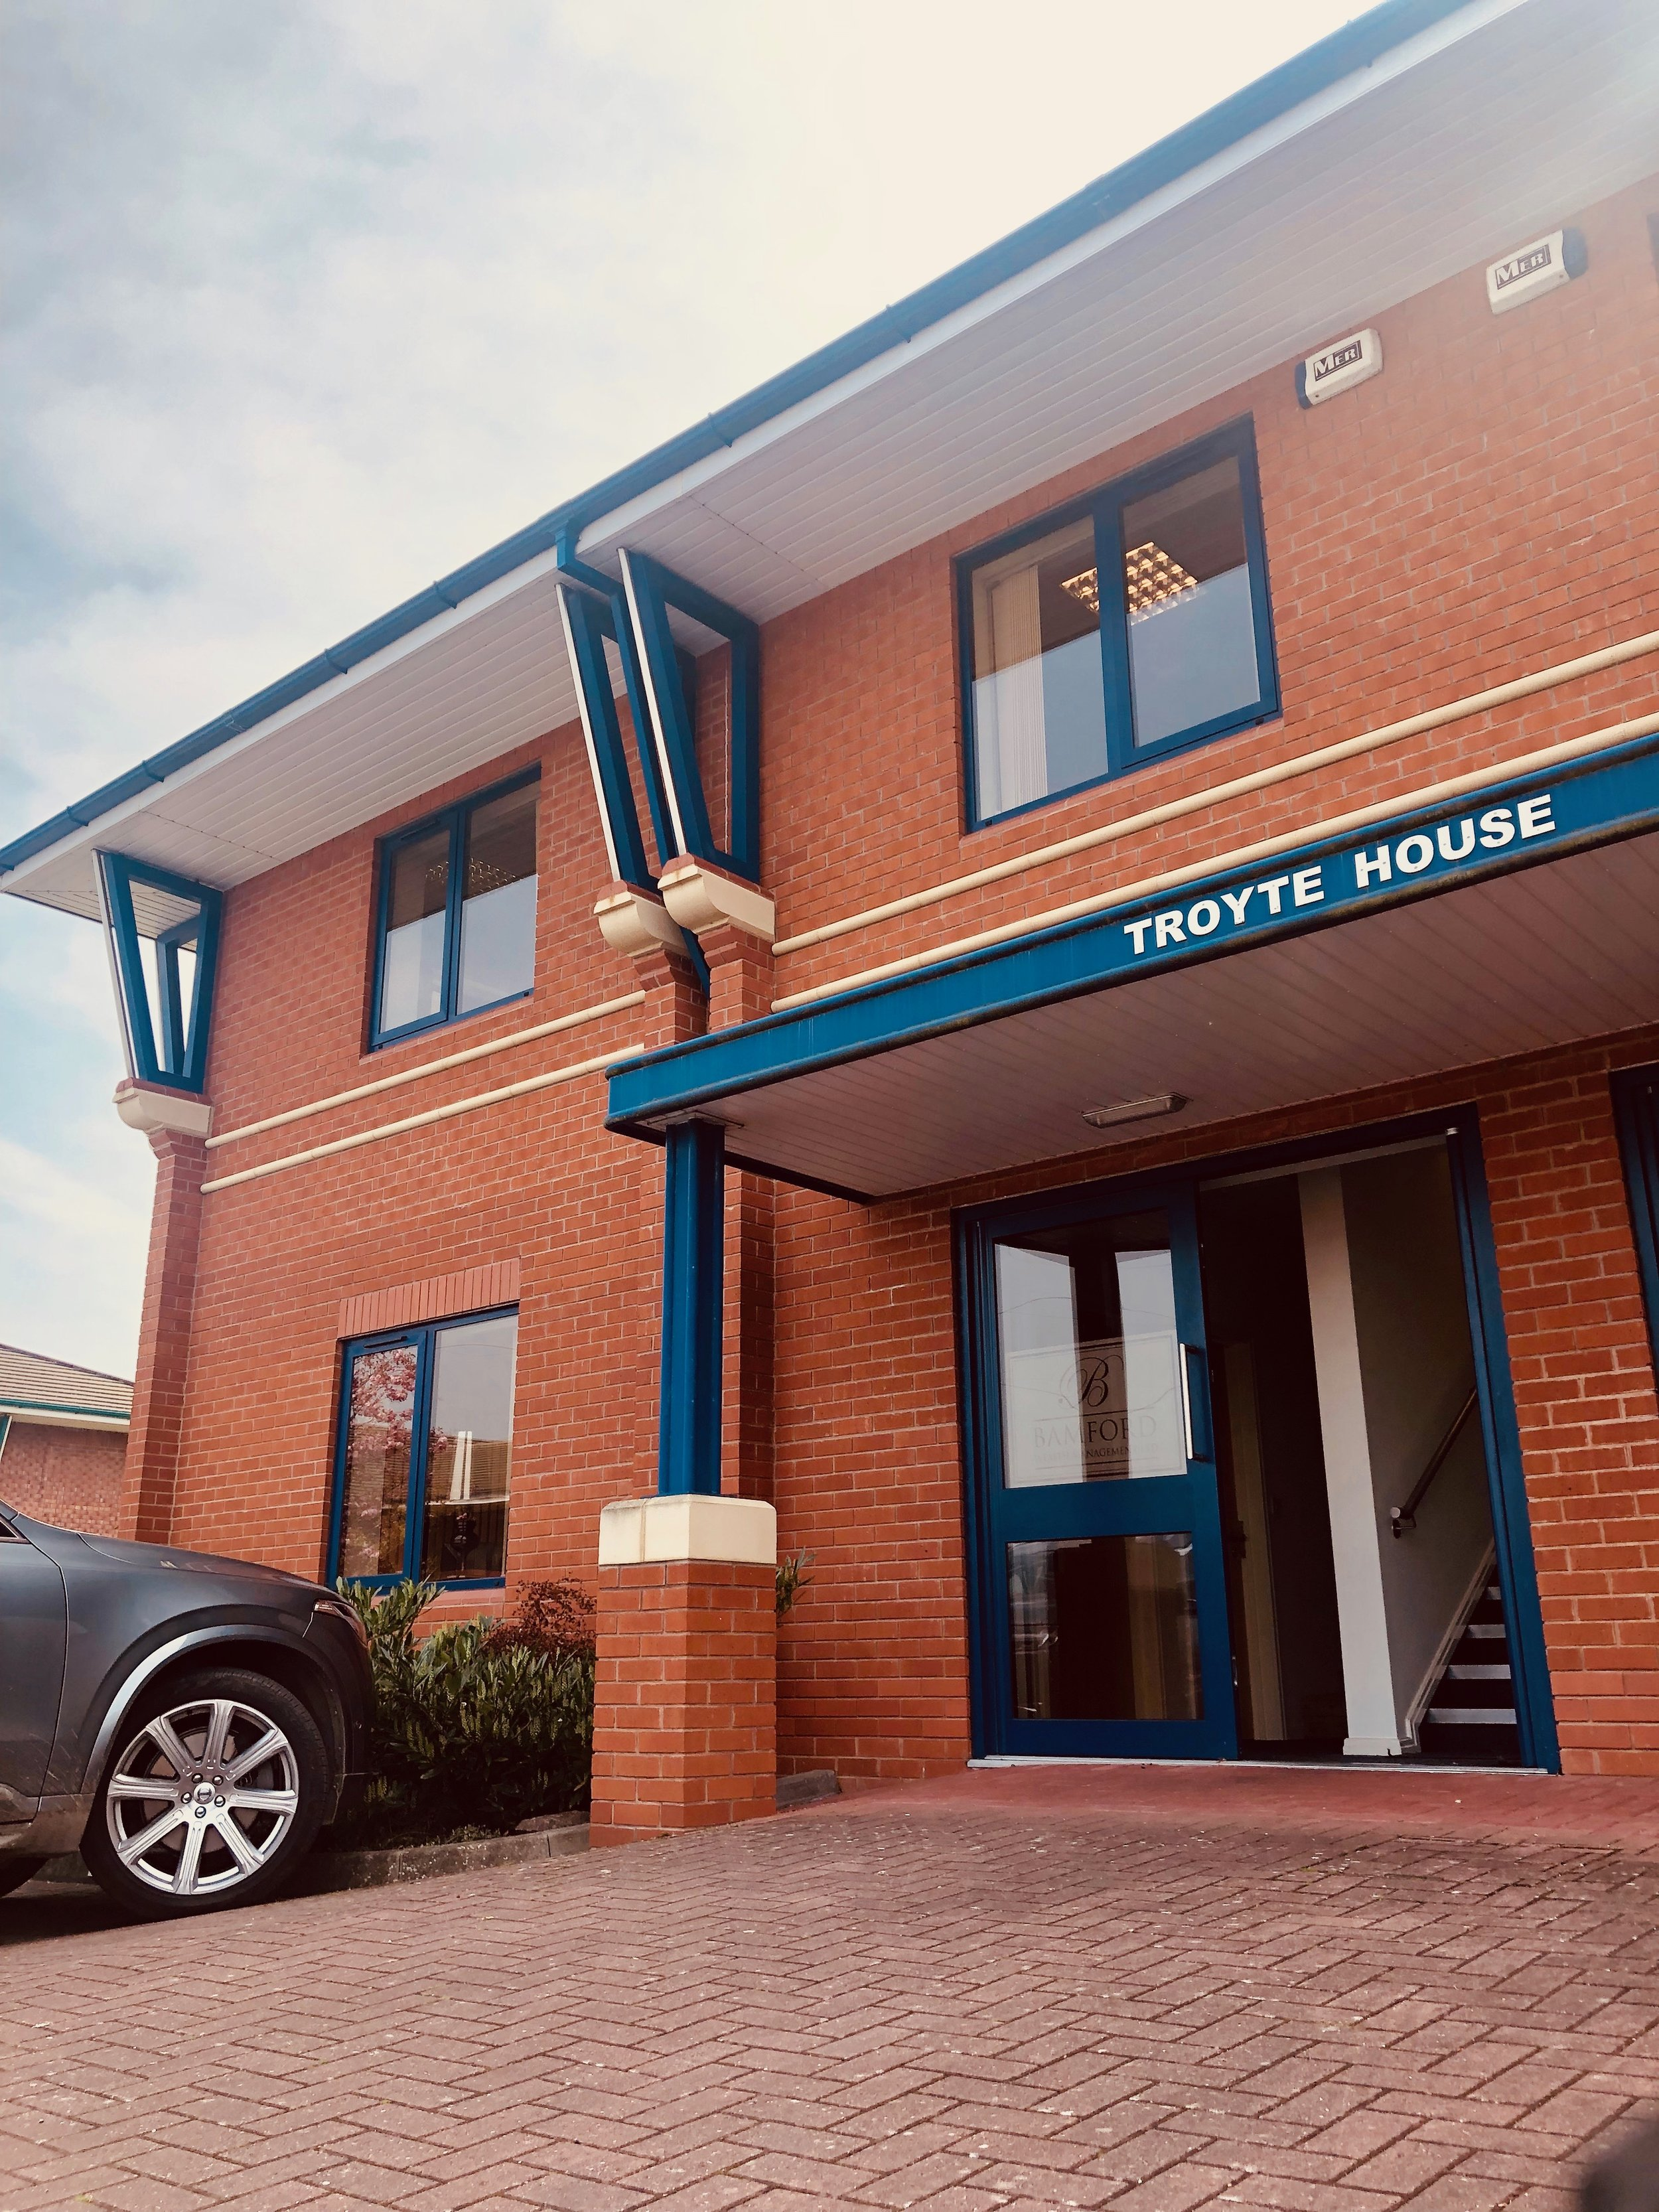 Our Offices - We are based in the EnigmaCommercial Centrein Malvern